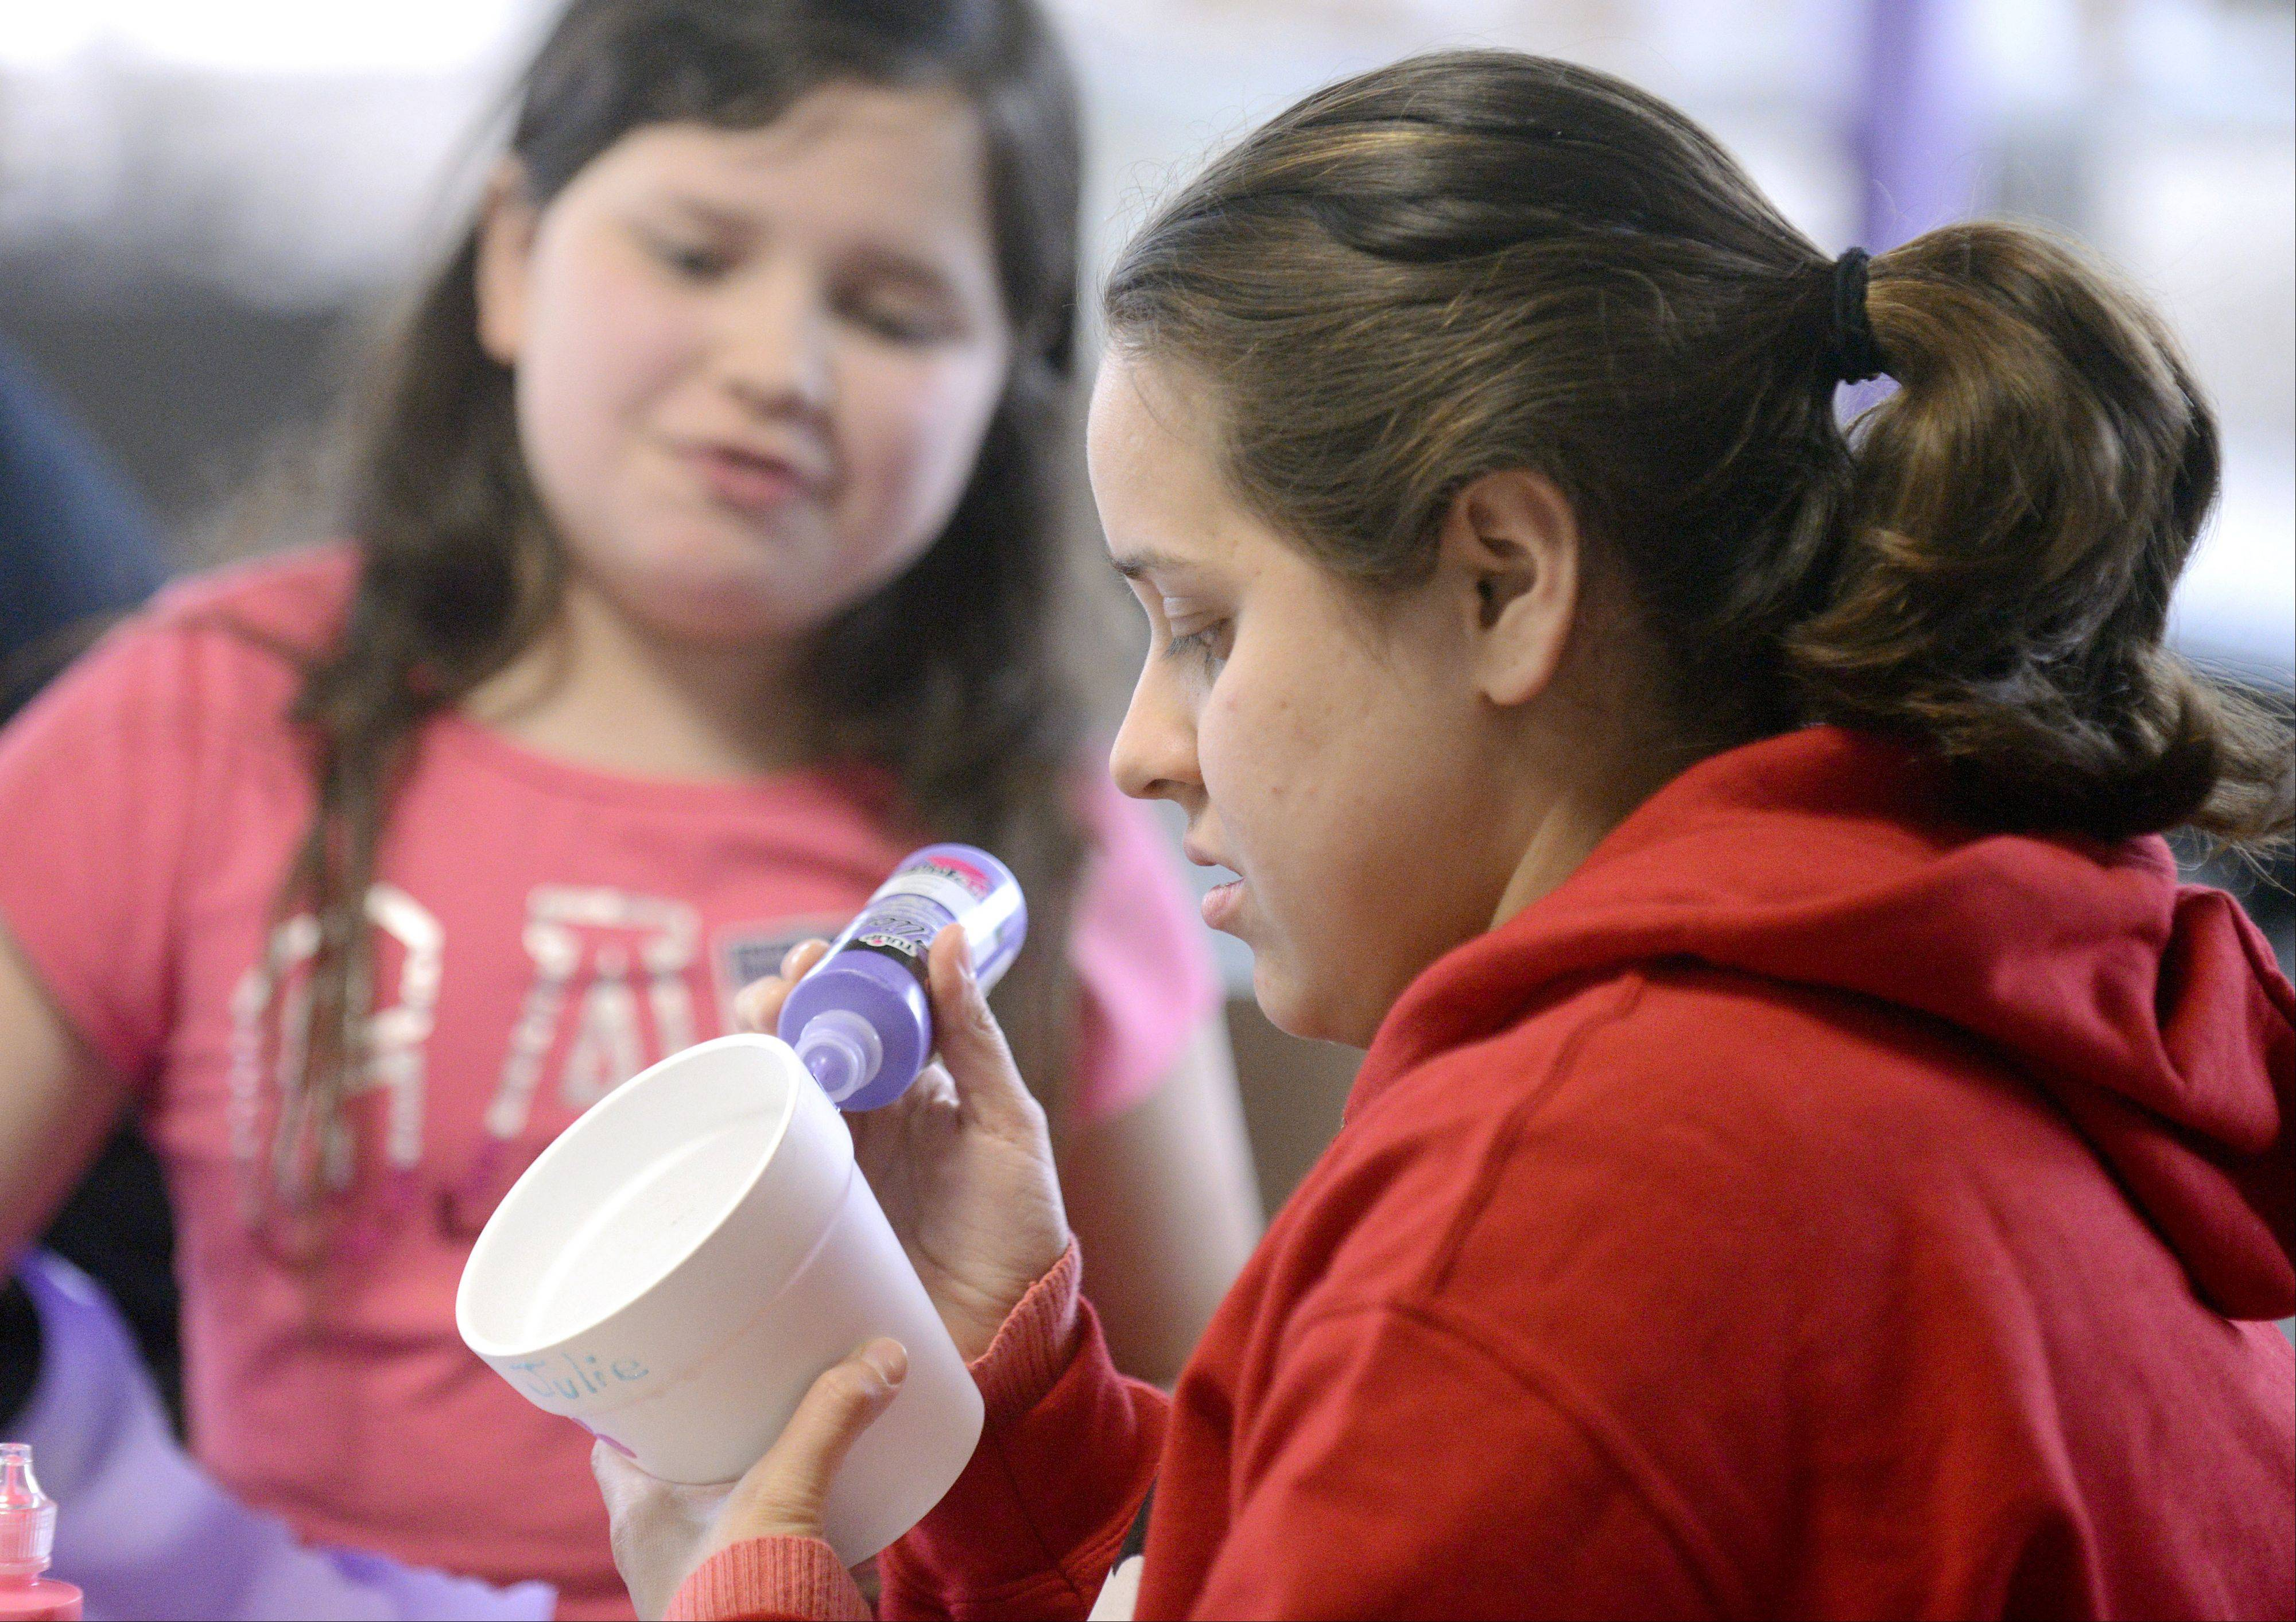 Vanessa Velasquez of Elgin decorates a flower pot with her little sister, Julissa, 10, at the American Cancer Society Relay For Life kickoff event Saturday at Elgin Community College. Velasquez is a student at the college, and she and Julissa will be participating in the June 14-15 event for the first time this year. They are walking to honor a family friend who was recently diagnosed with lung cancer.